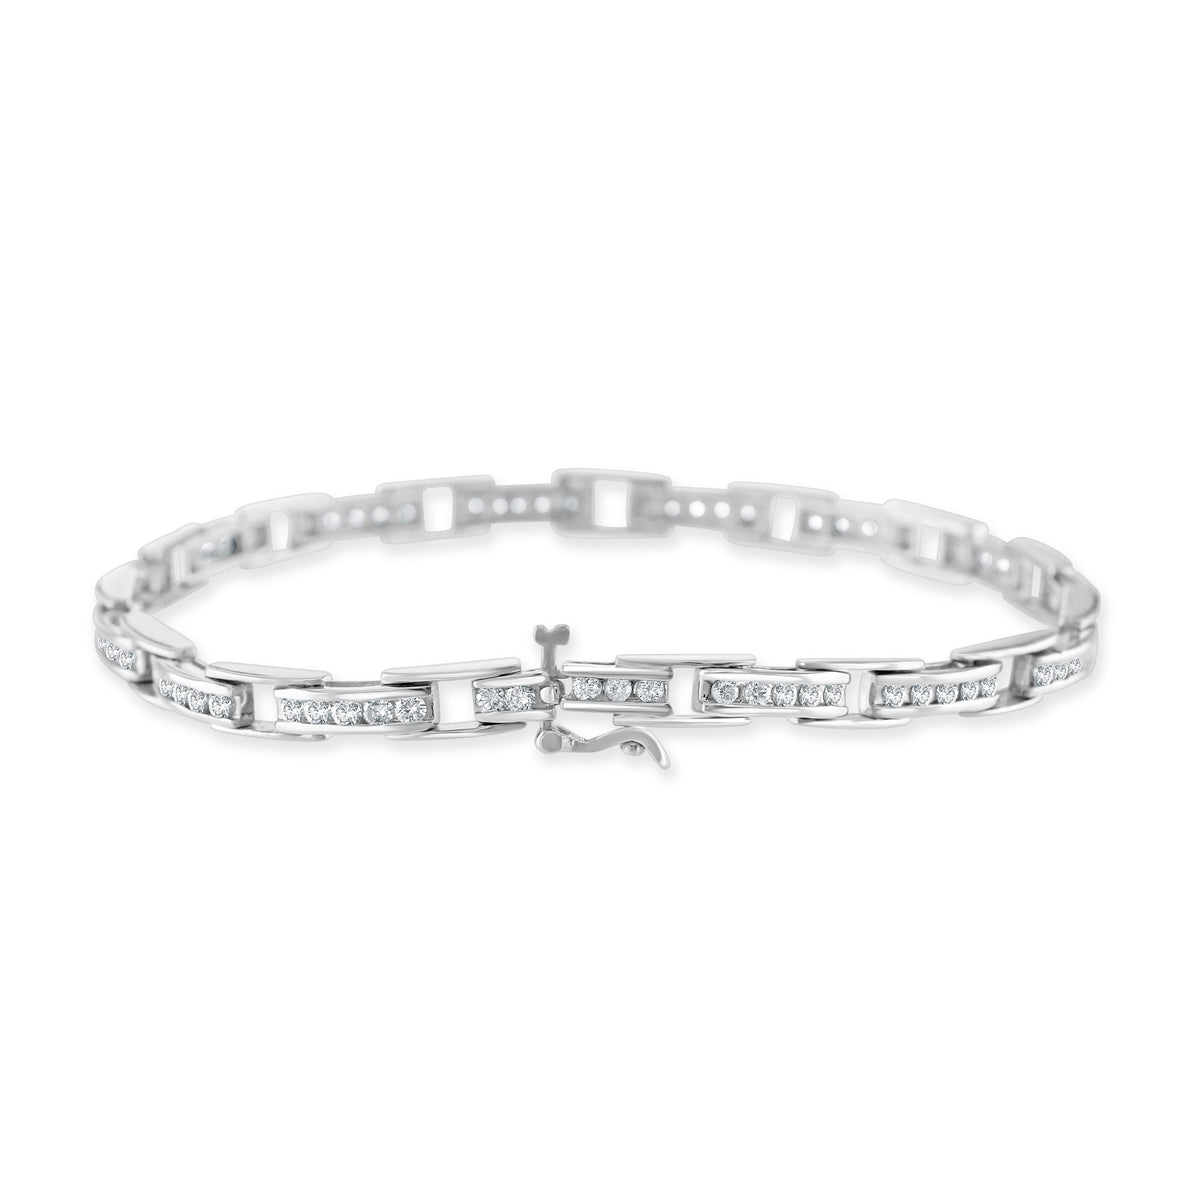 18ct White Gold Diamond Bracelet